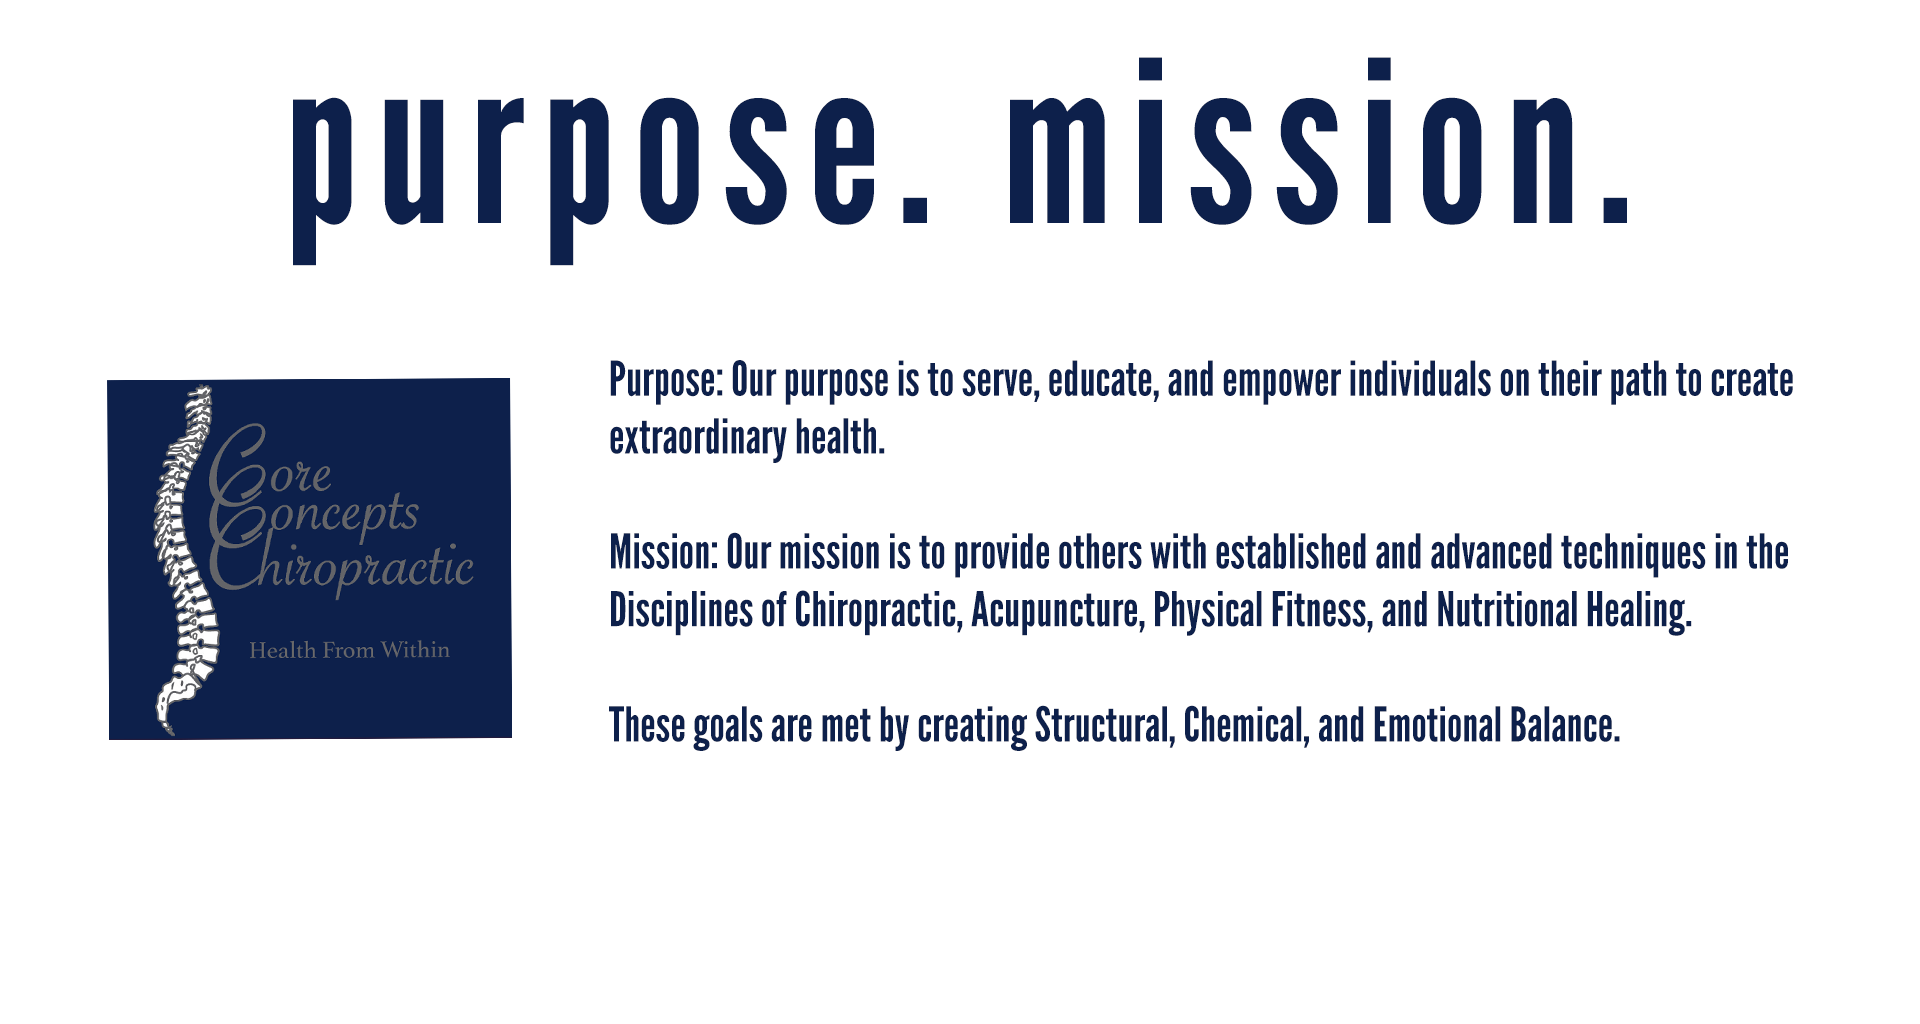 purpose mission